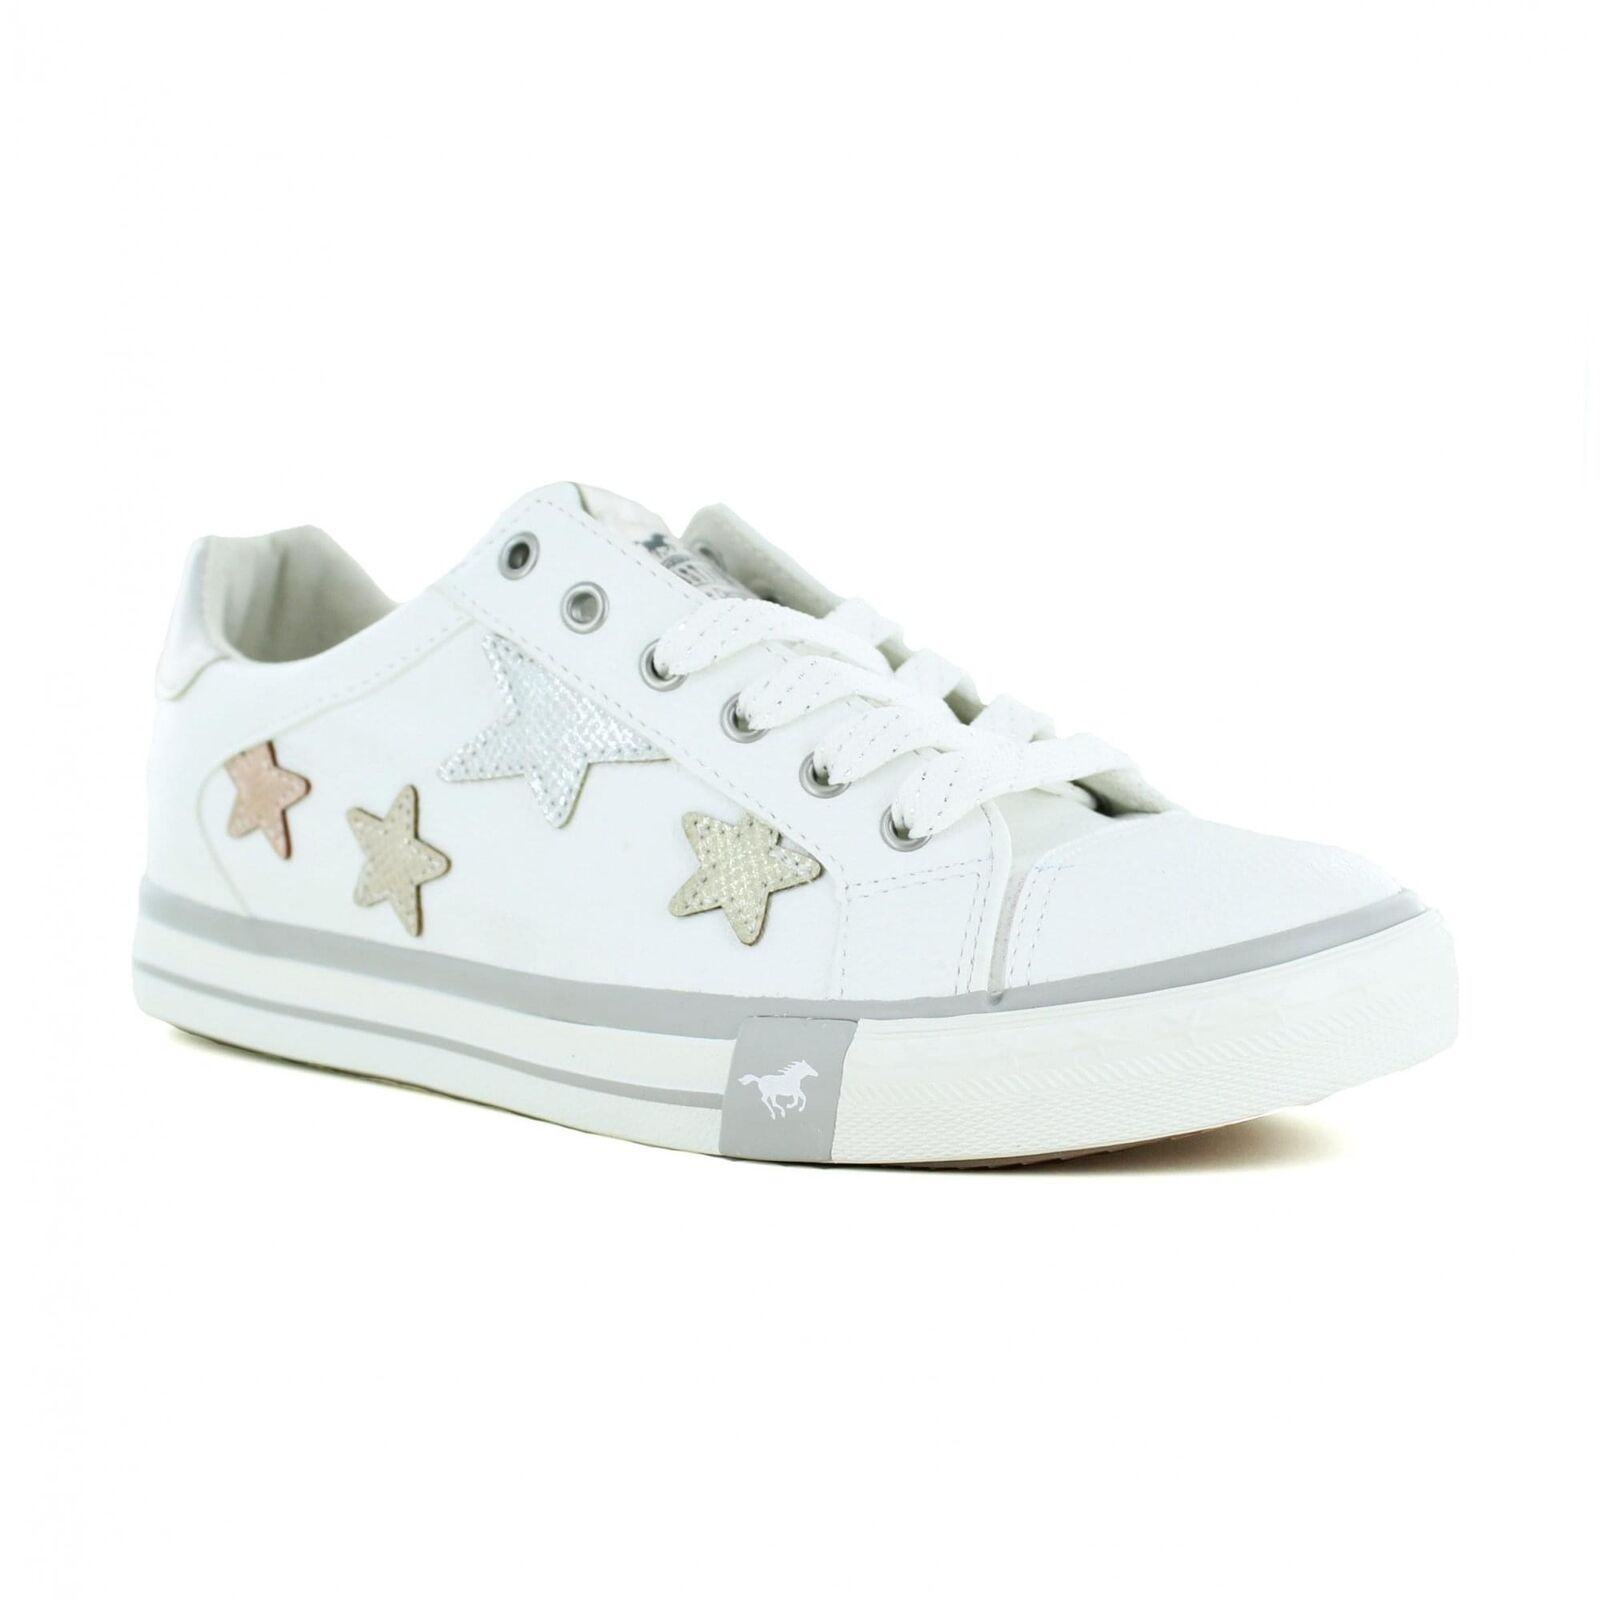 Mustang 1146-308-1 Womens Fashion Trainer Shoes - White